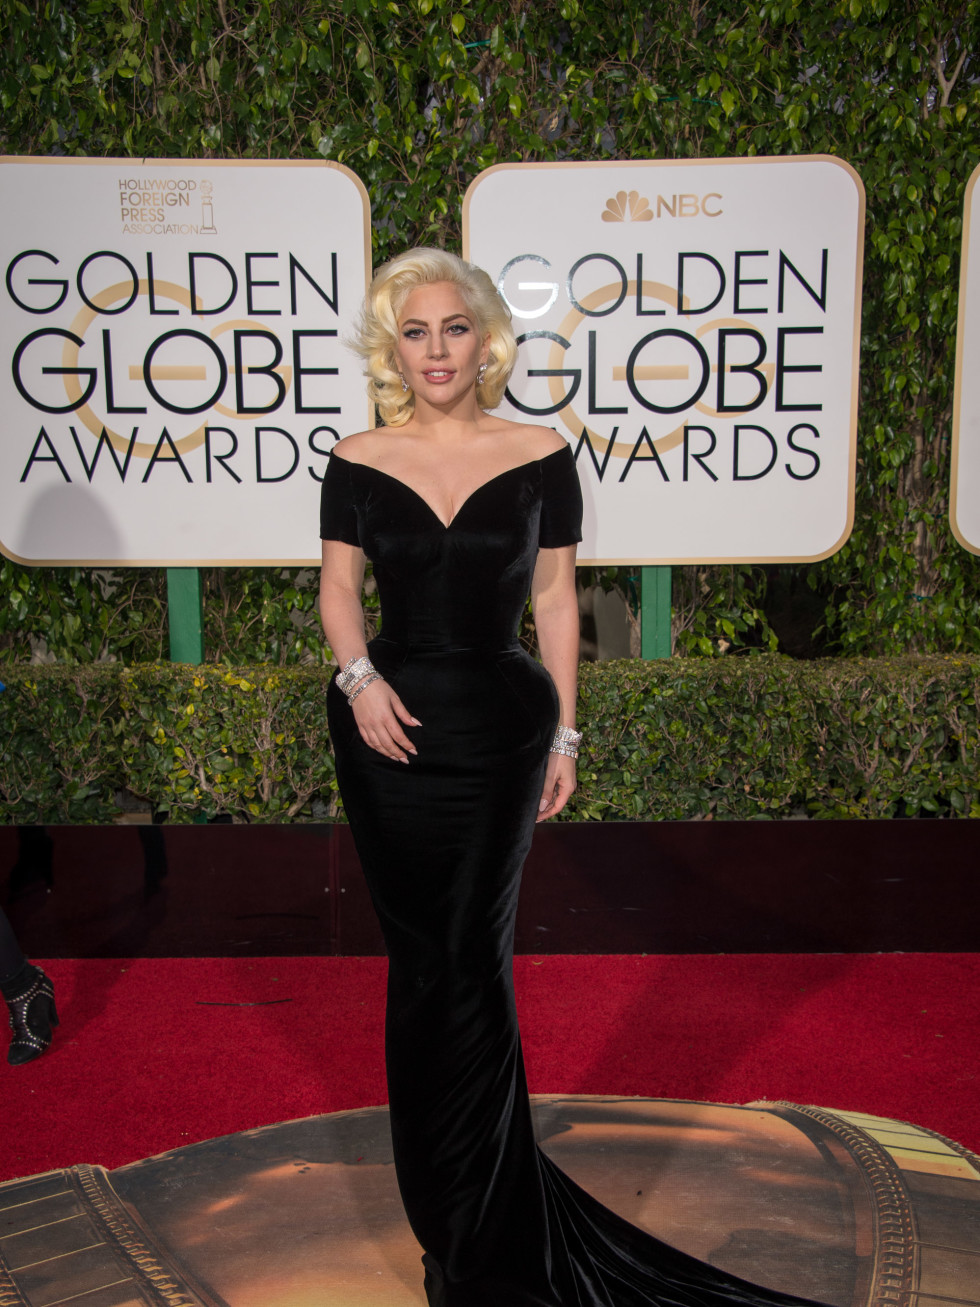 Lady Gaga at Golden Globe Awards